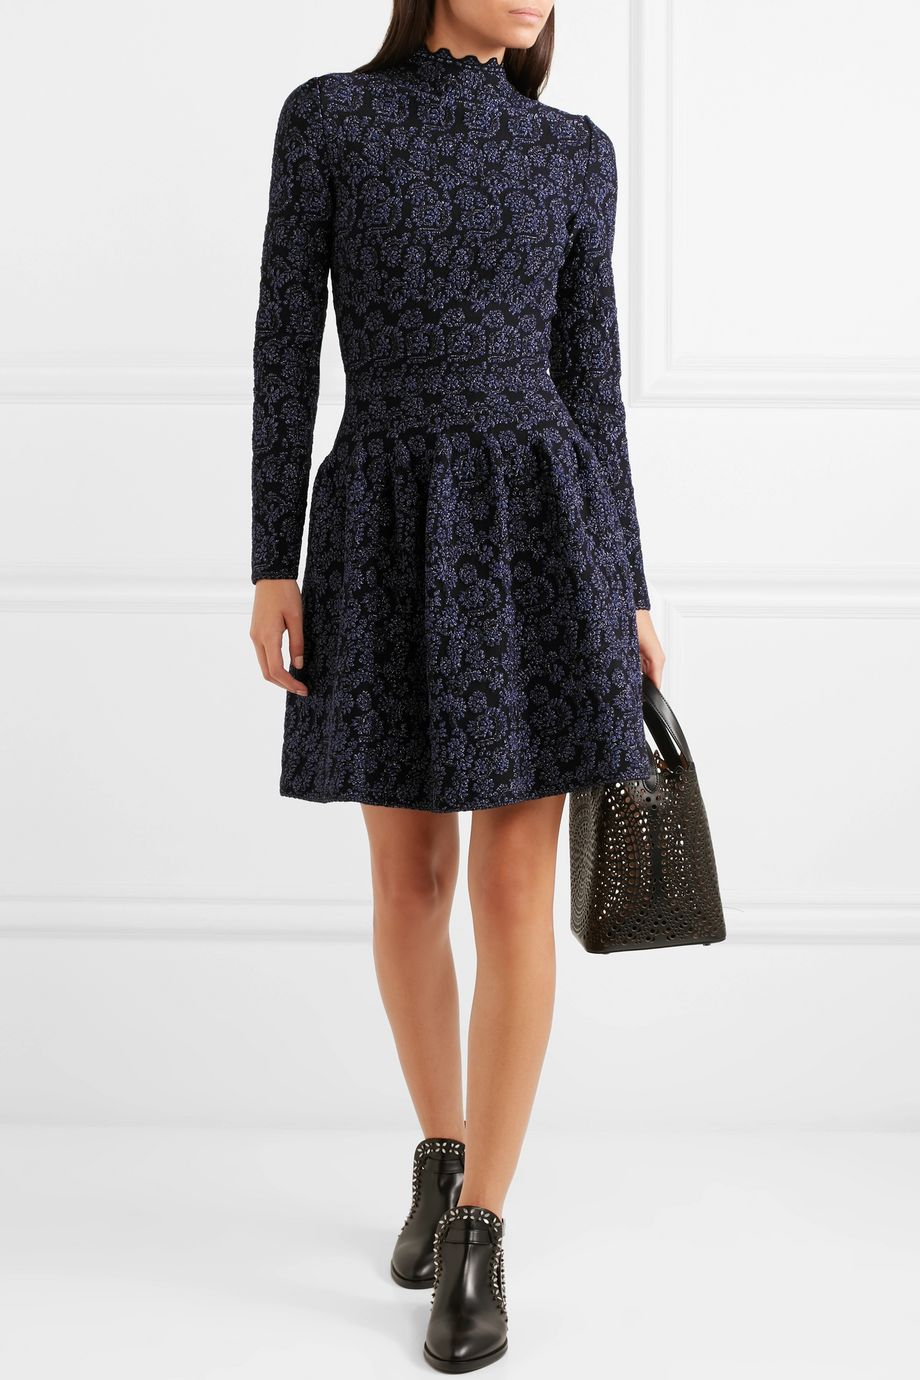 Alaïa Metallic jacquard-knit dress